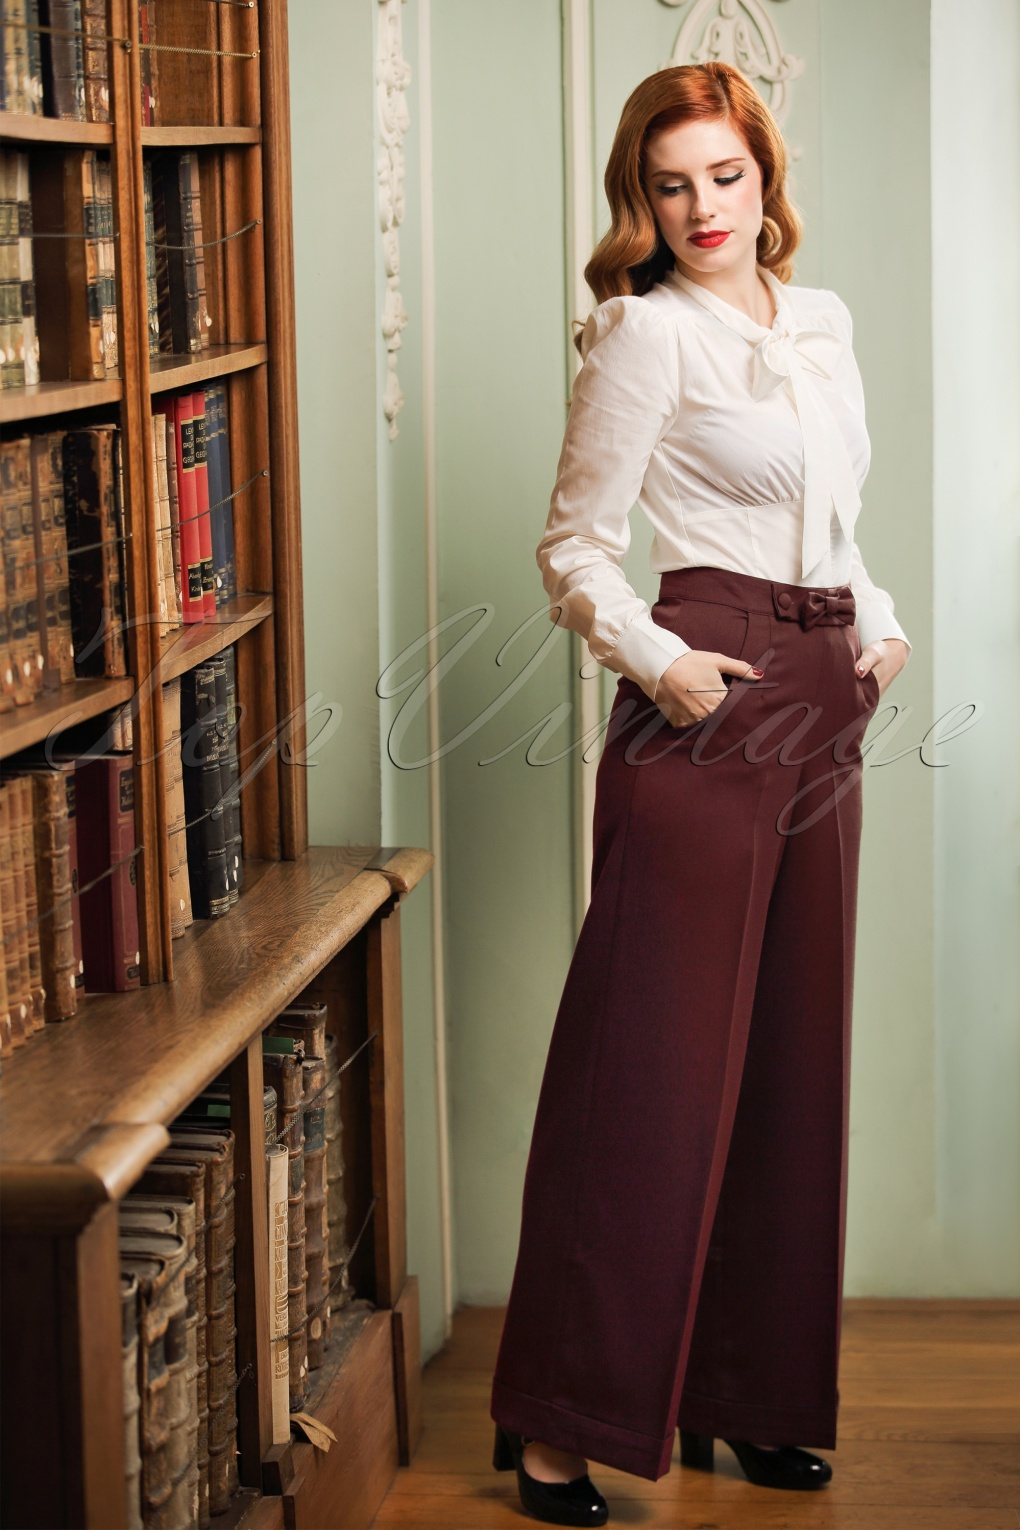 Vintage High Waisted Trousers, Sailor Pants, Jeans 40s Hidden Away Trousers in Burgundy £33.46 AT vintagedancer.com